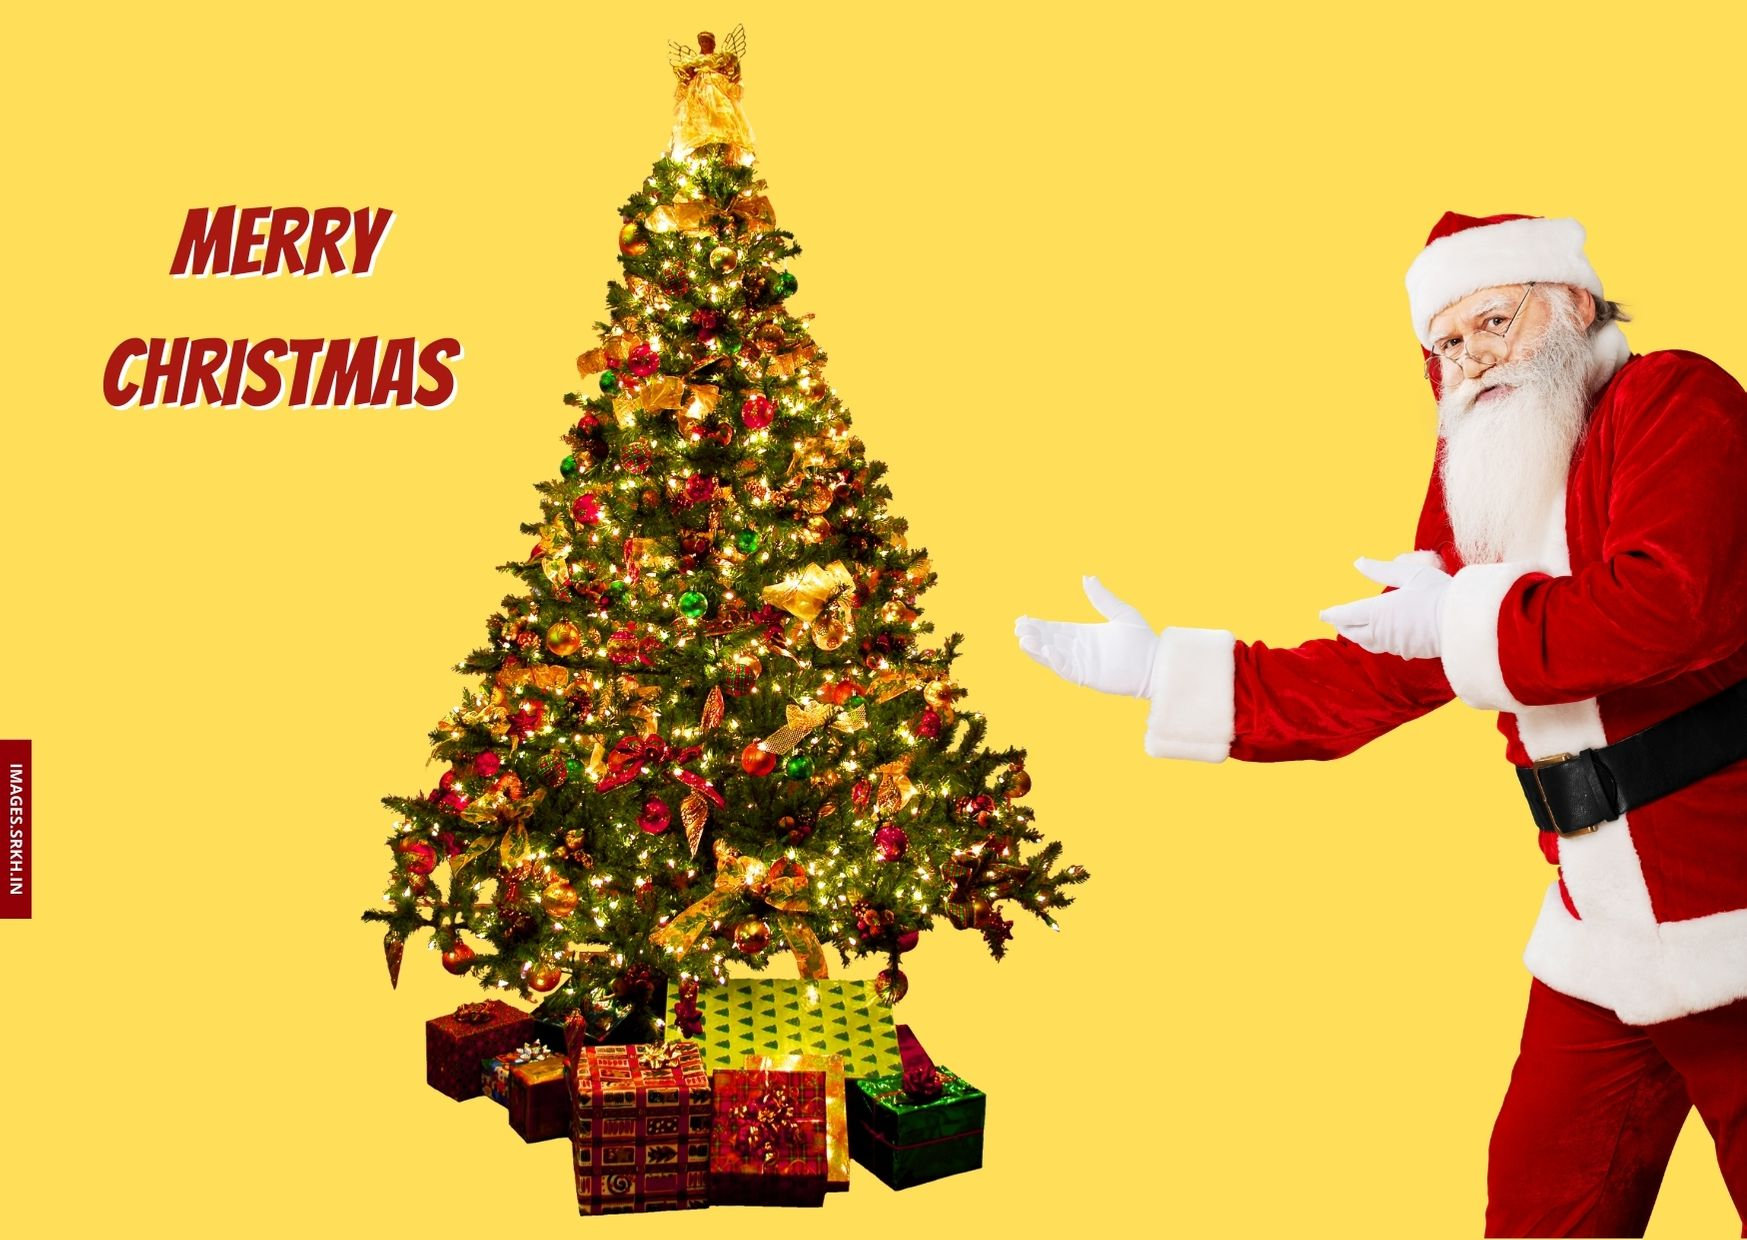 Santa Claus Images With Christmas Tree